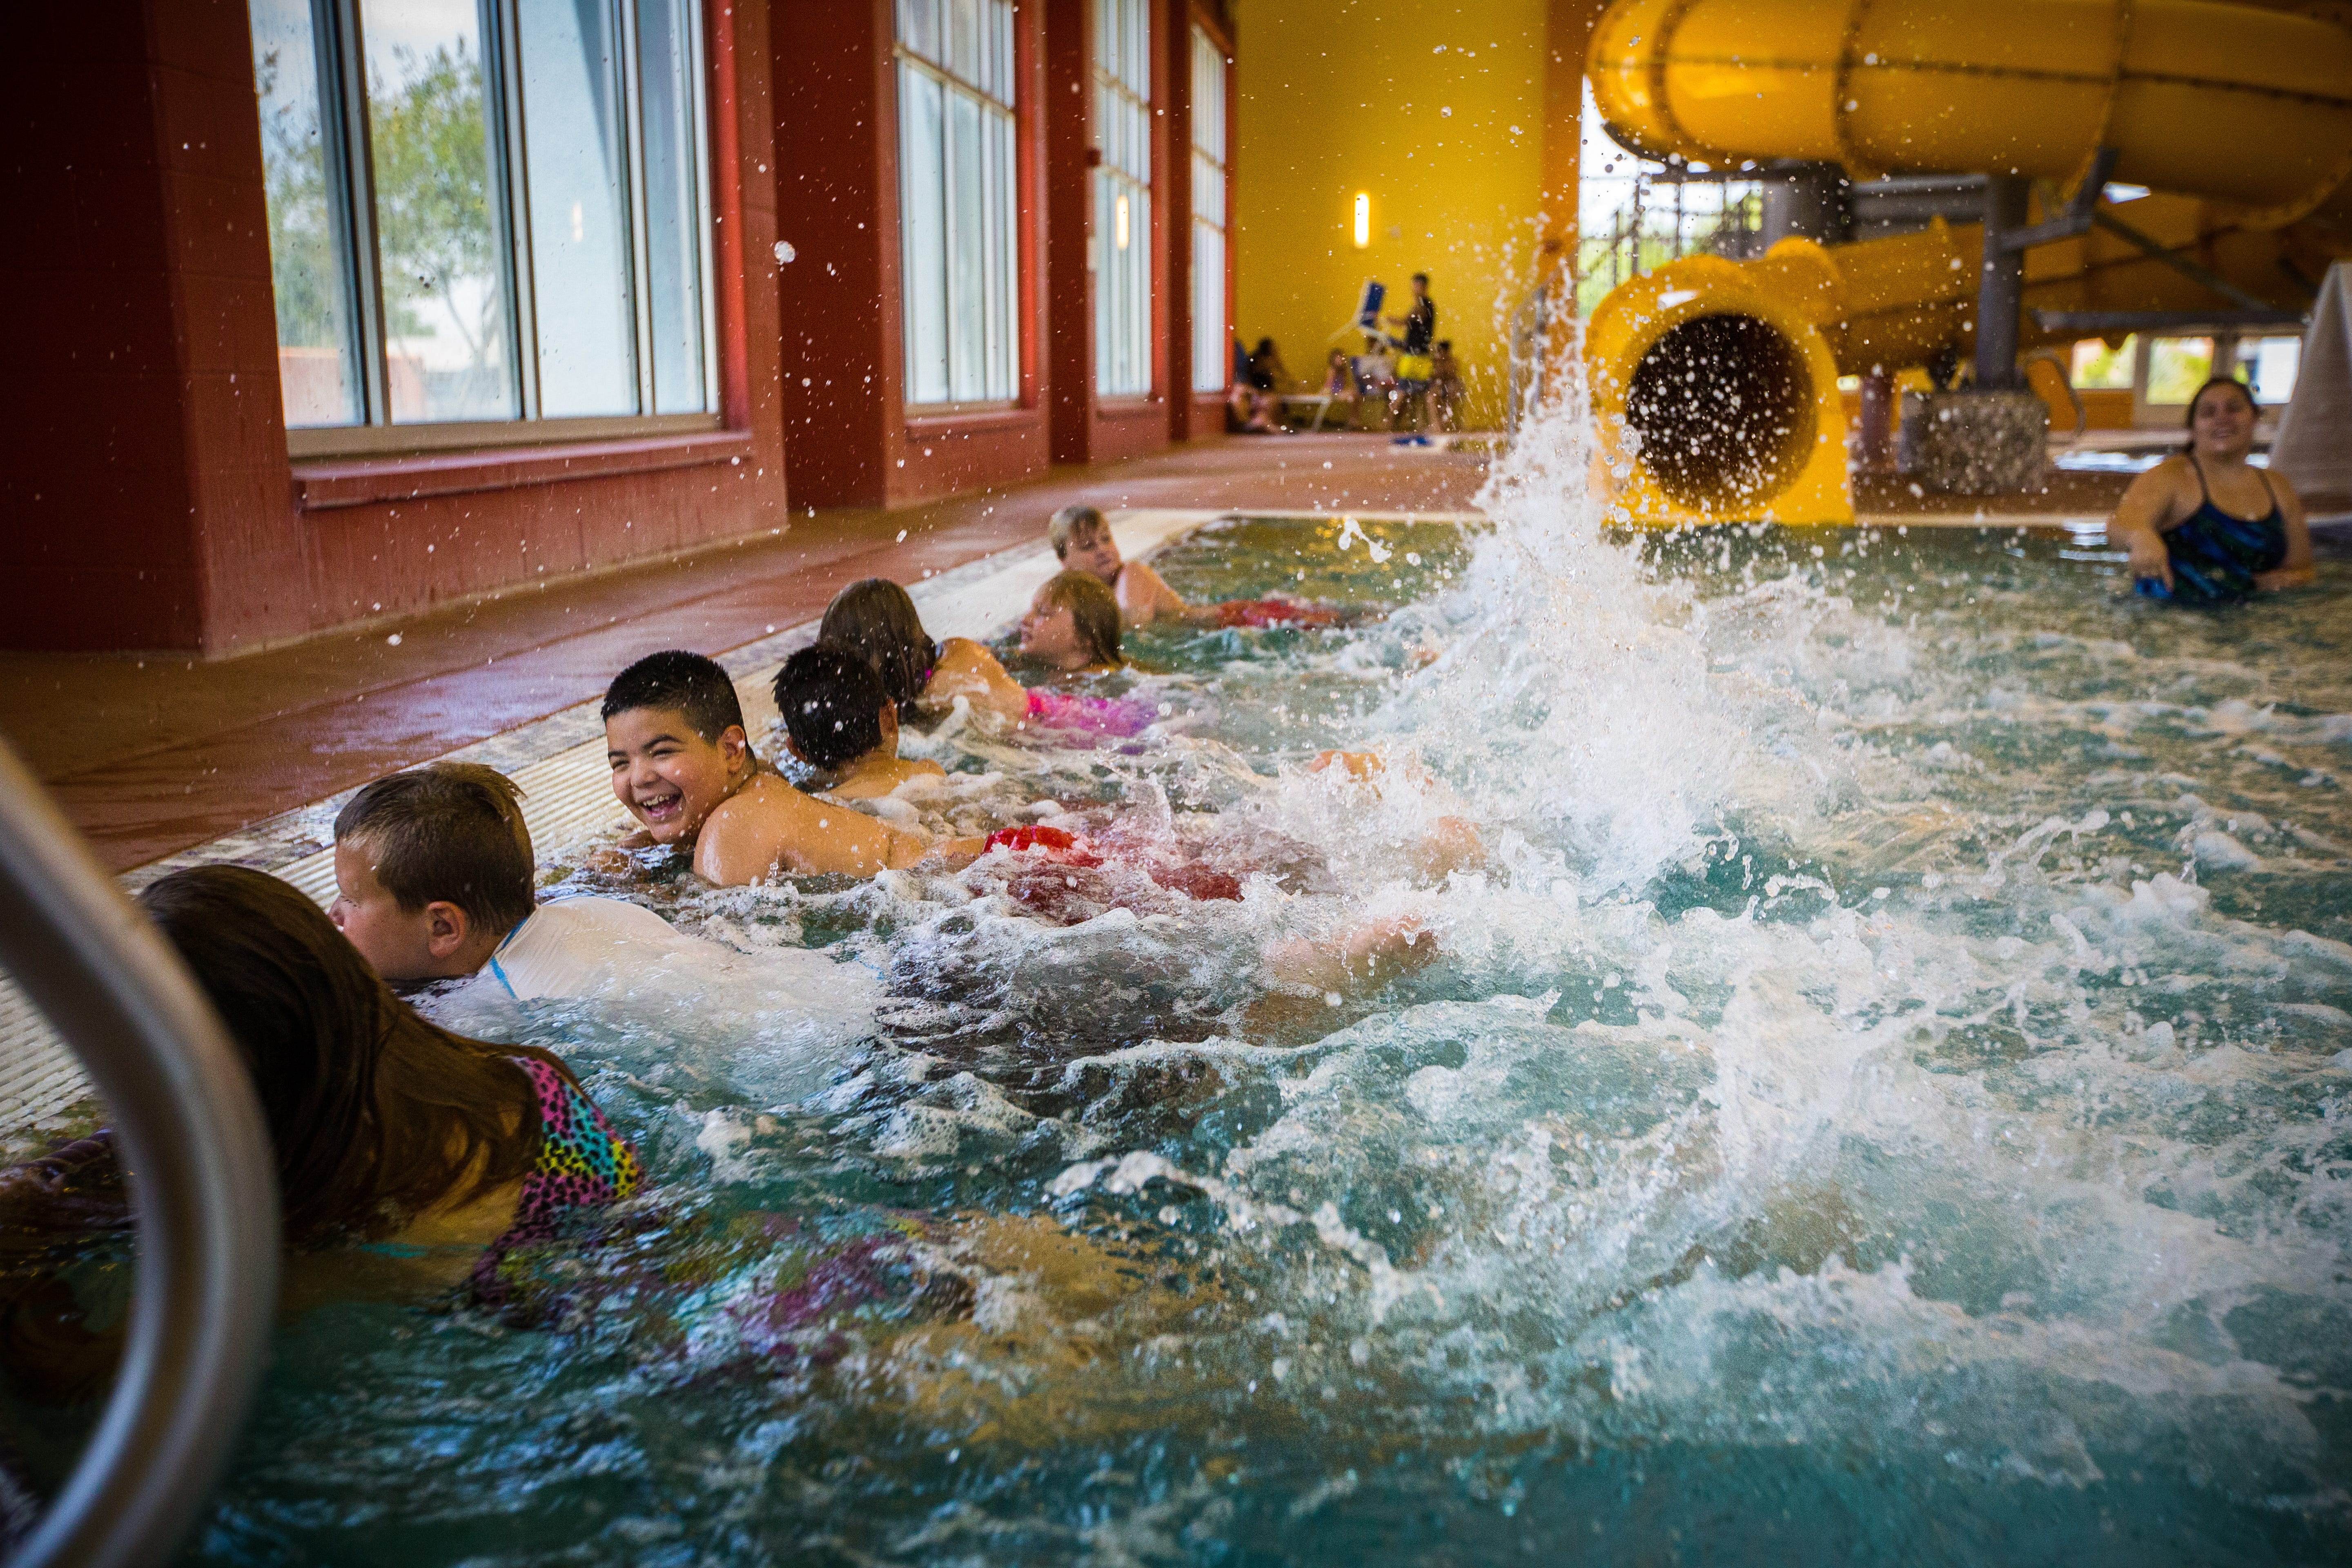 City of Las Cruces summer pool hours announced | Las Cruces Sun